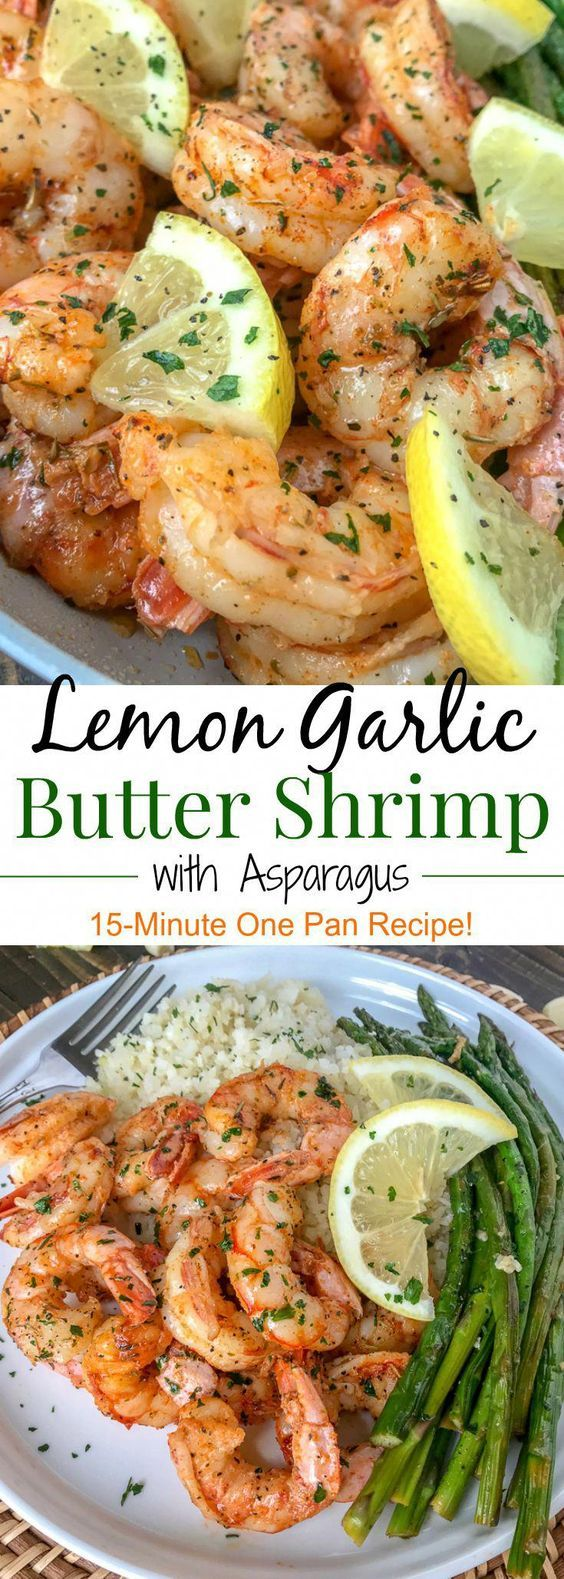 Lemon Garlic Butter Shrimp with Asparagus #dishesfordinner